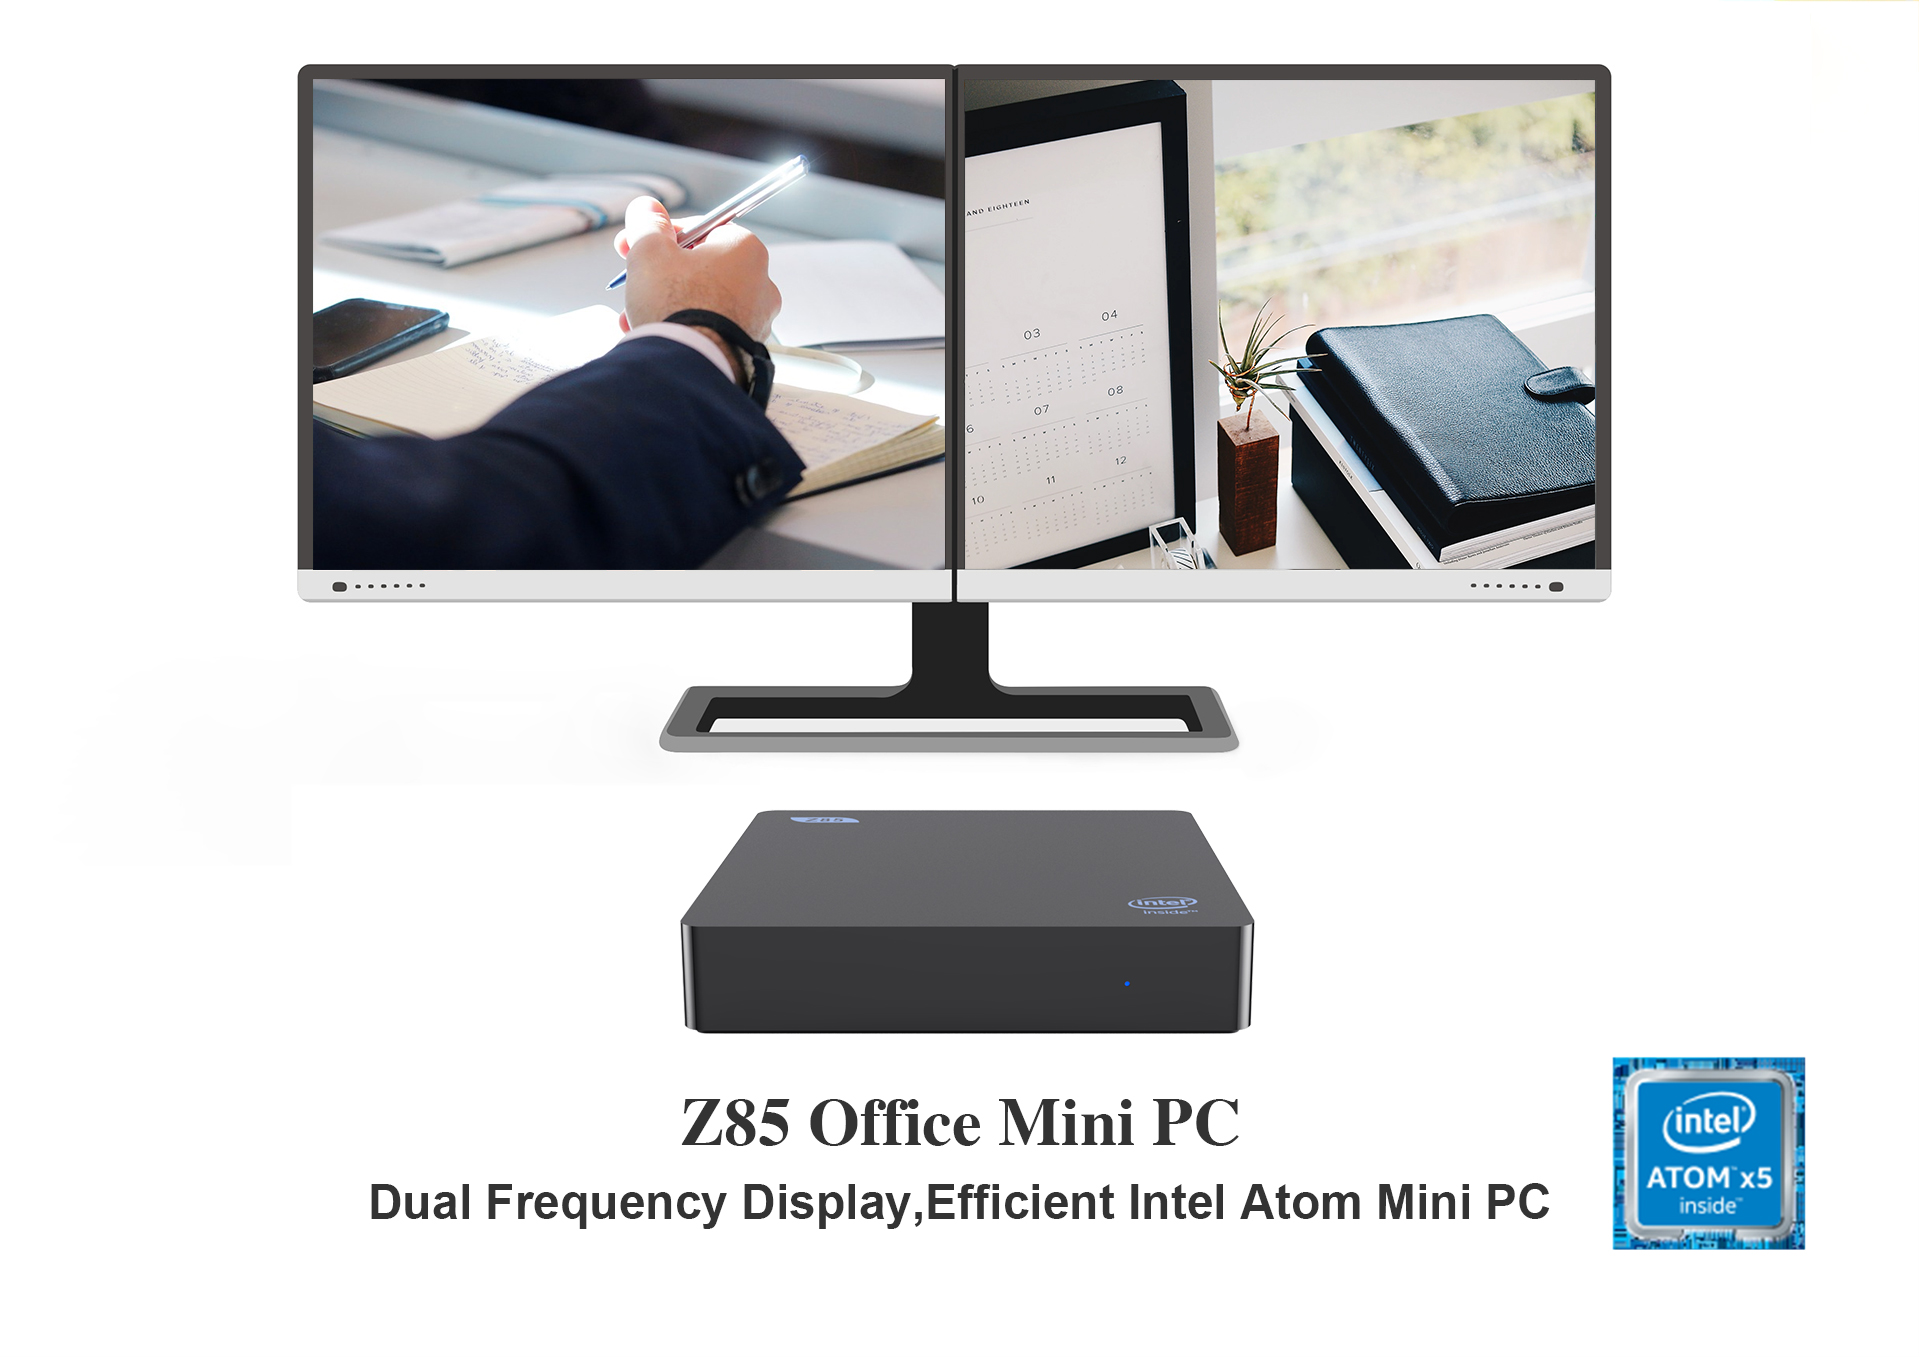 Factory Direct Intel Atom z8350 Mini PC Z85 Windows10 Dual Band Wifi 2gb ram 32gb rom